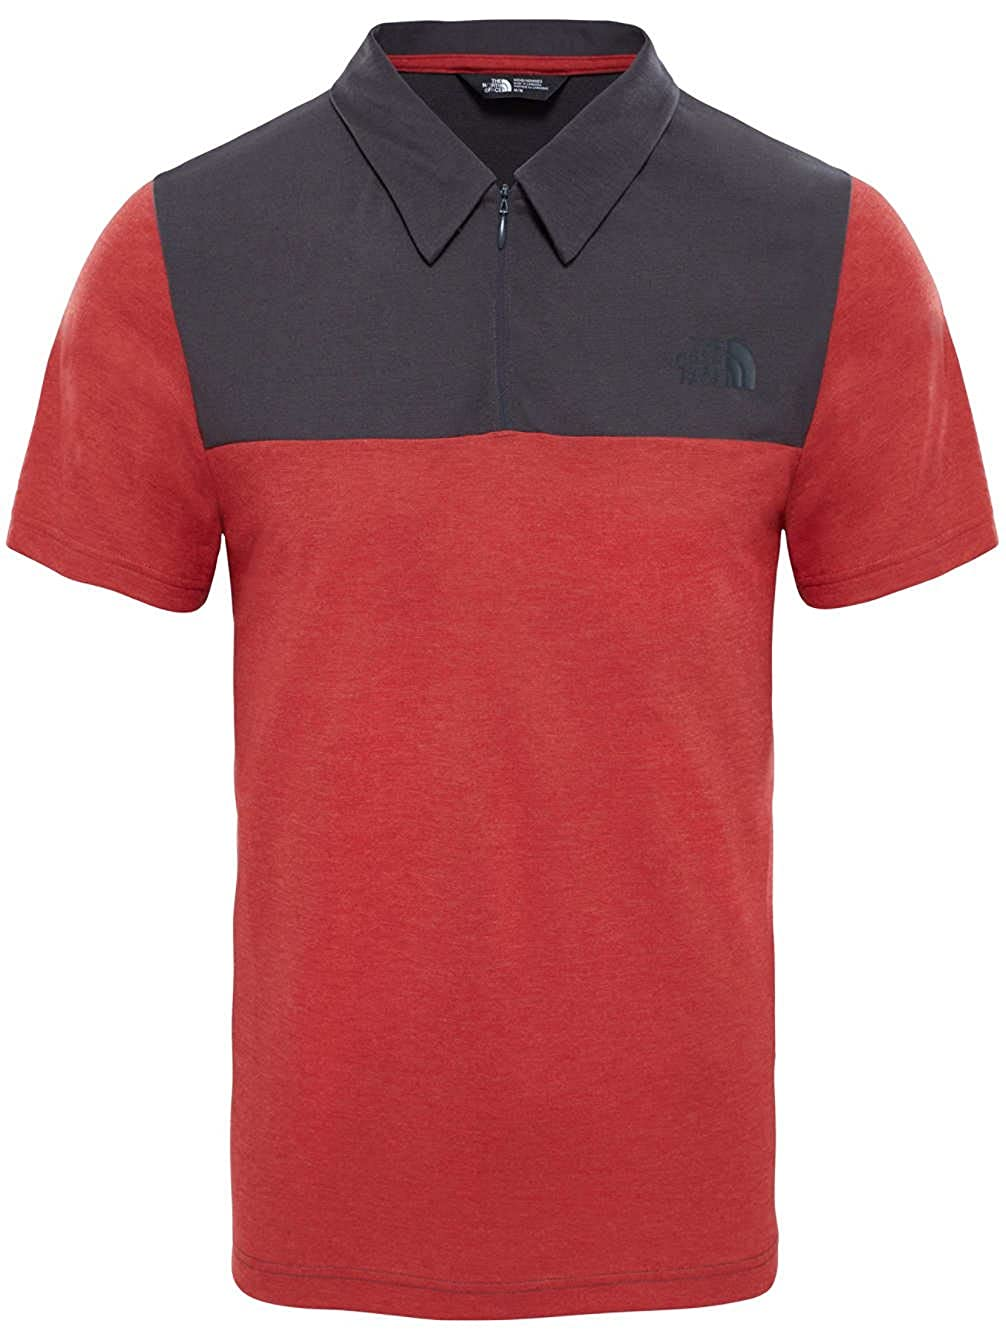 The North Face M S/S Technical Polo, Hombre: Amazon.es: Ropa y ...